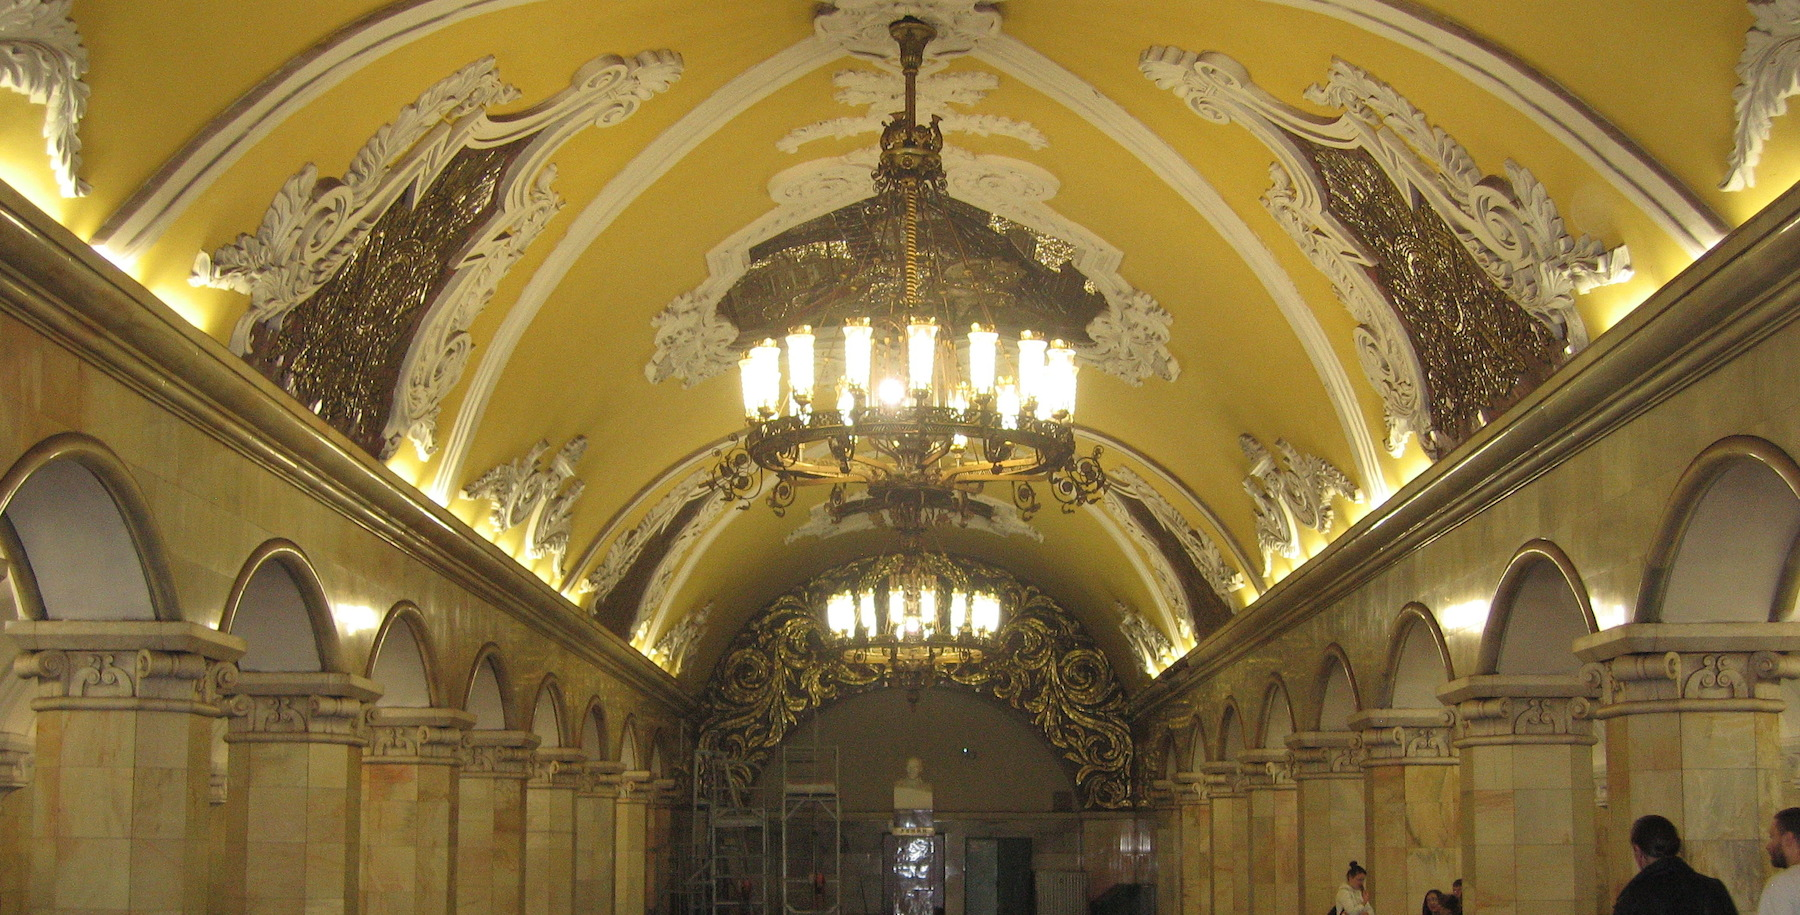 Komsomolskaya (communist youth league) Station, built after World War II. The architecture, more baroque in nature, typifies the architecture of the time period and contains images that glorify Russian history even before the revolution in 1917.